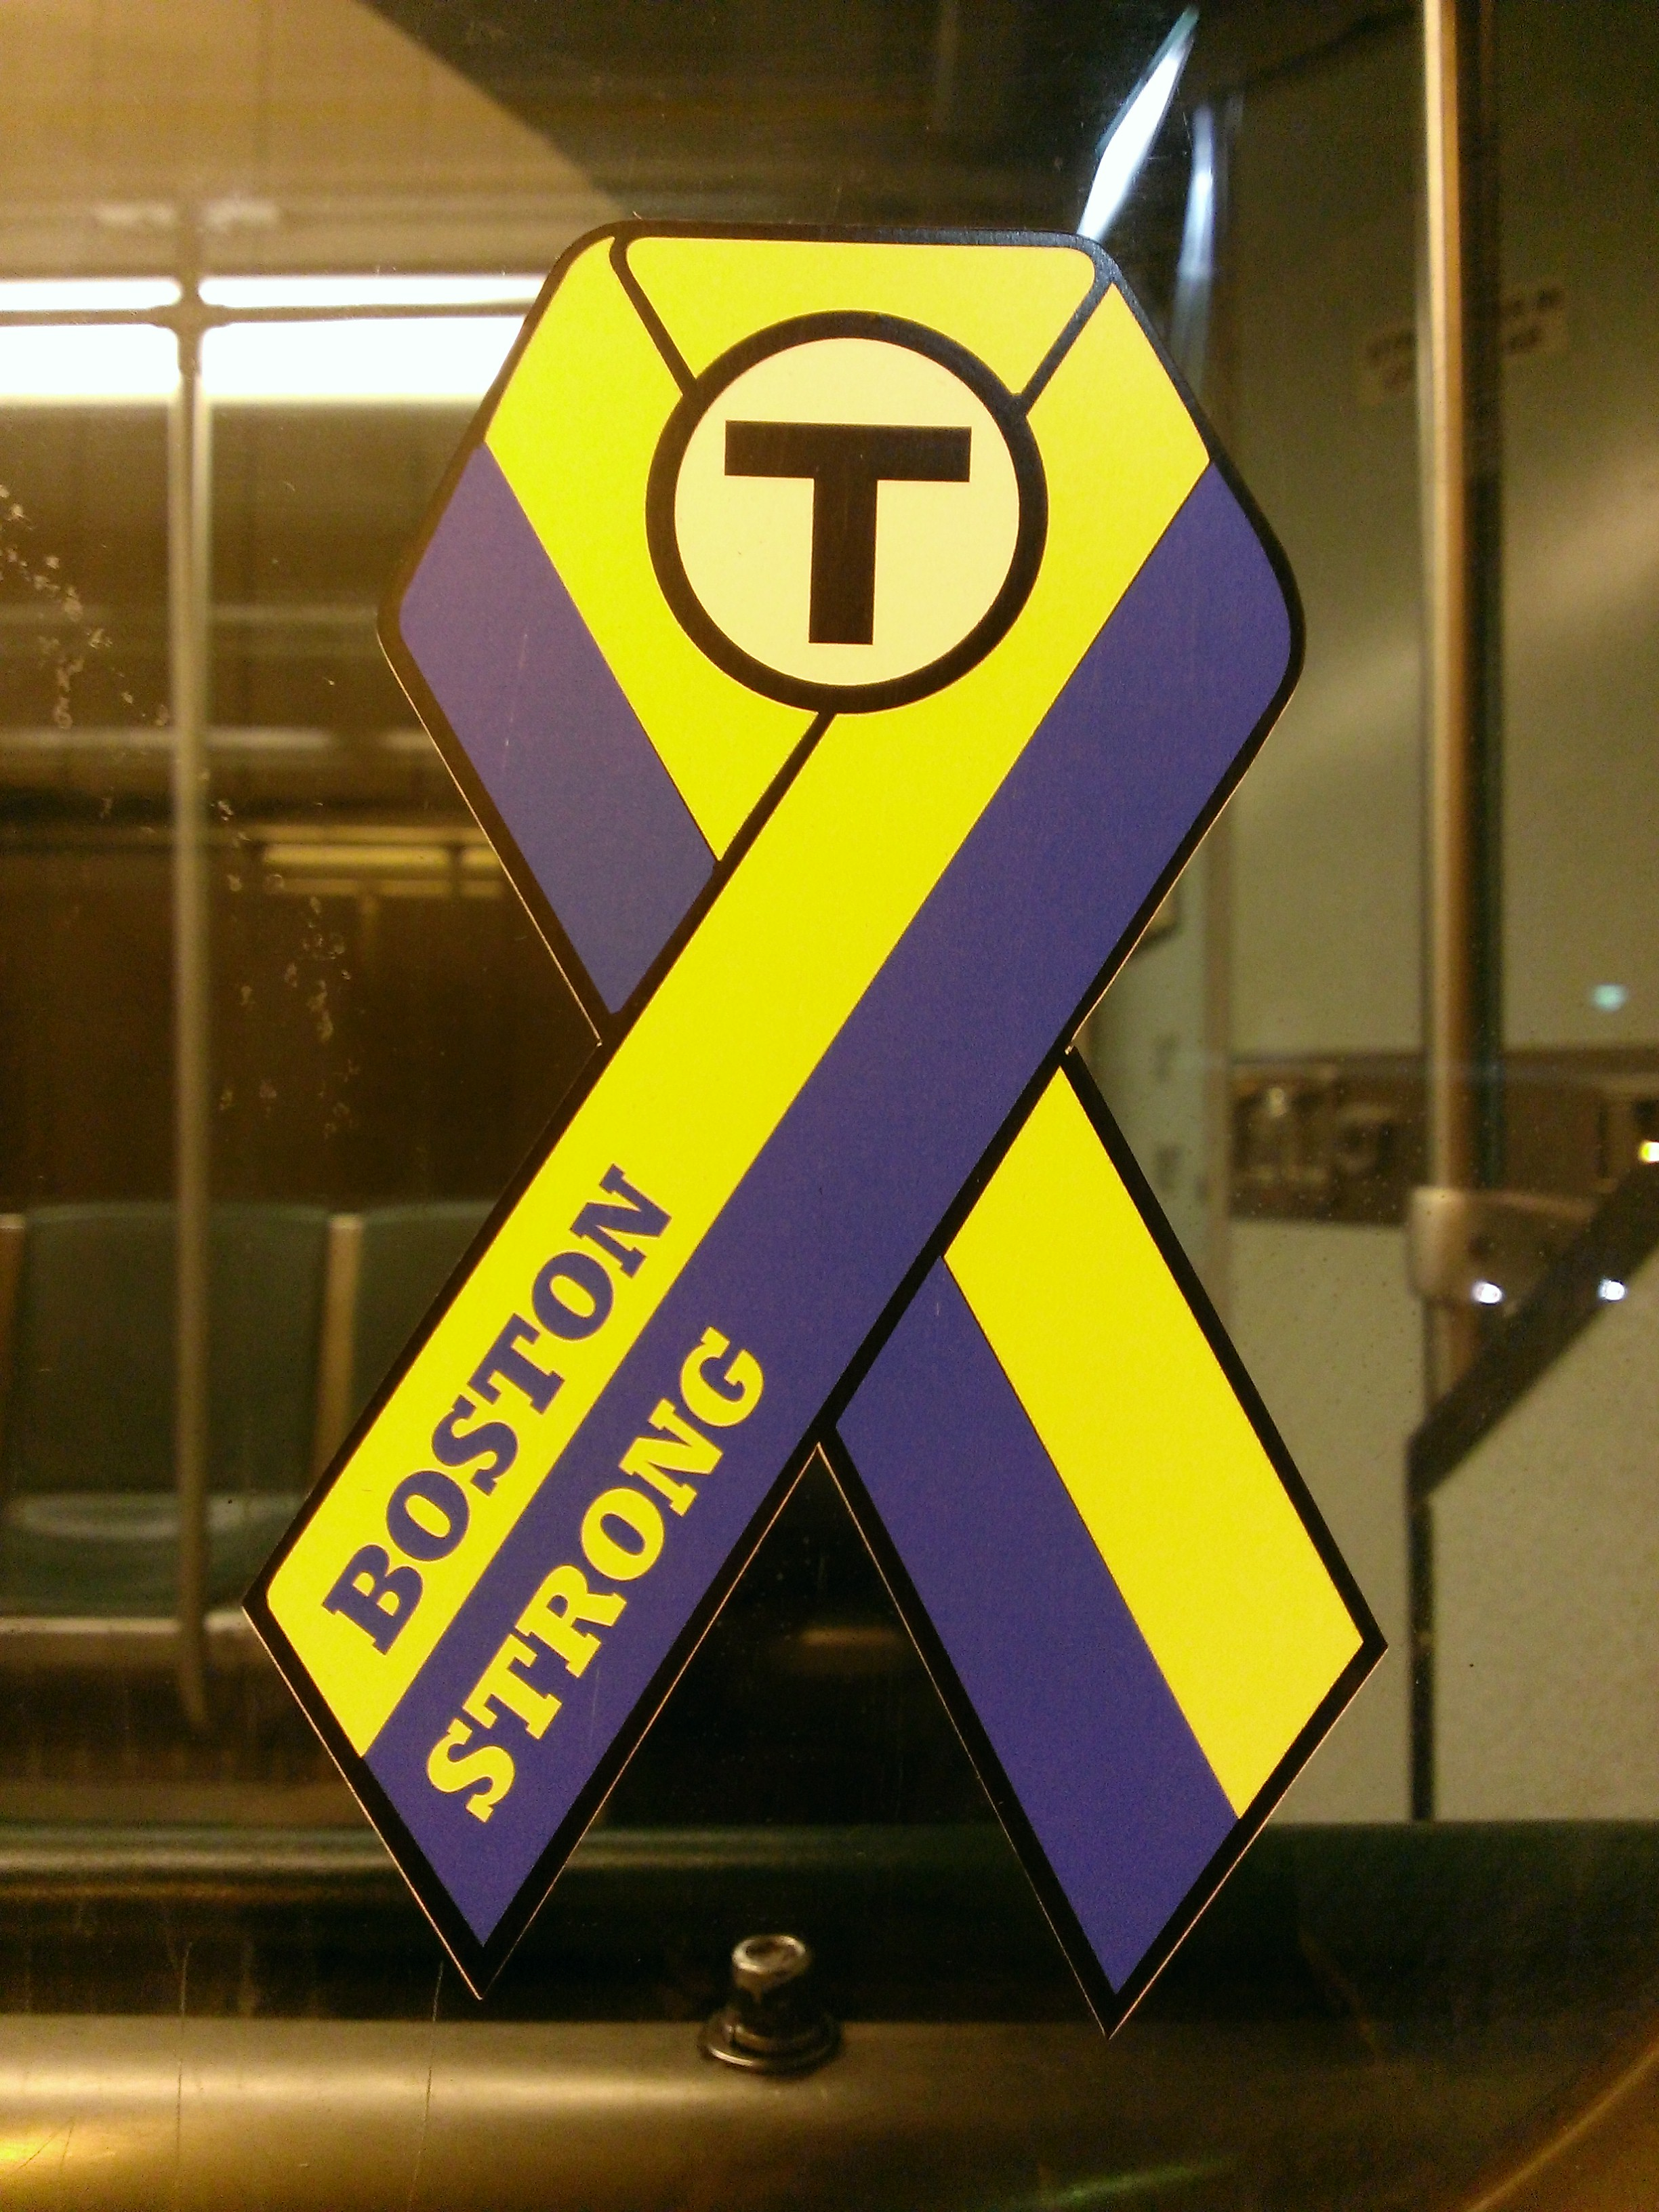 Ribbon stickers have started showing up on Green Line trains